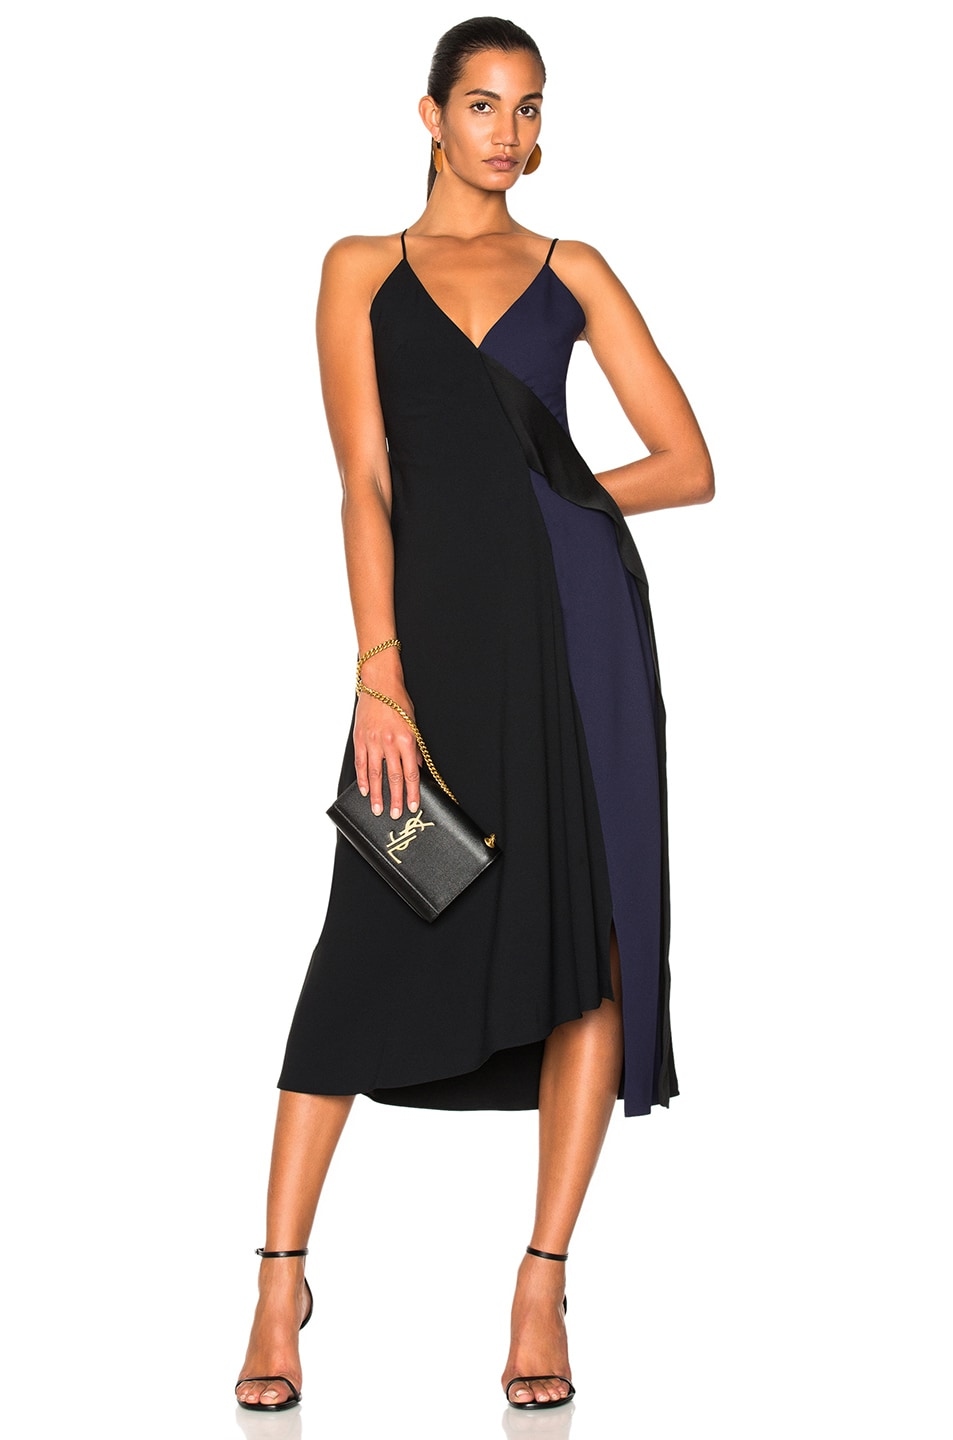 Free Shipping Cheap Online Outlet Pictures sequin V-neck dress - Black Victoria Beckham Free Shipping Ebay h8Zt5I